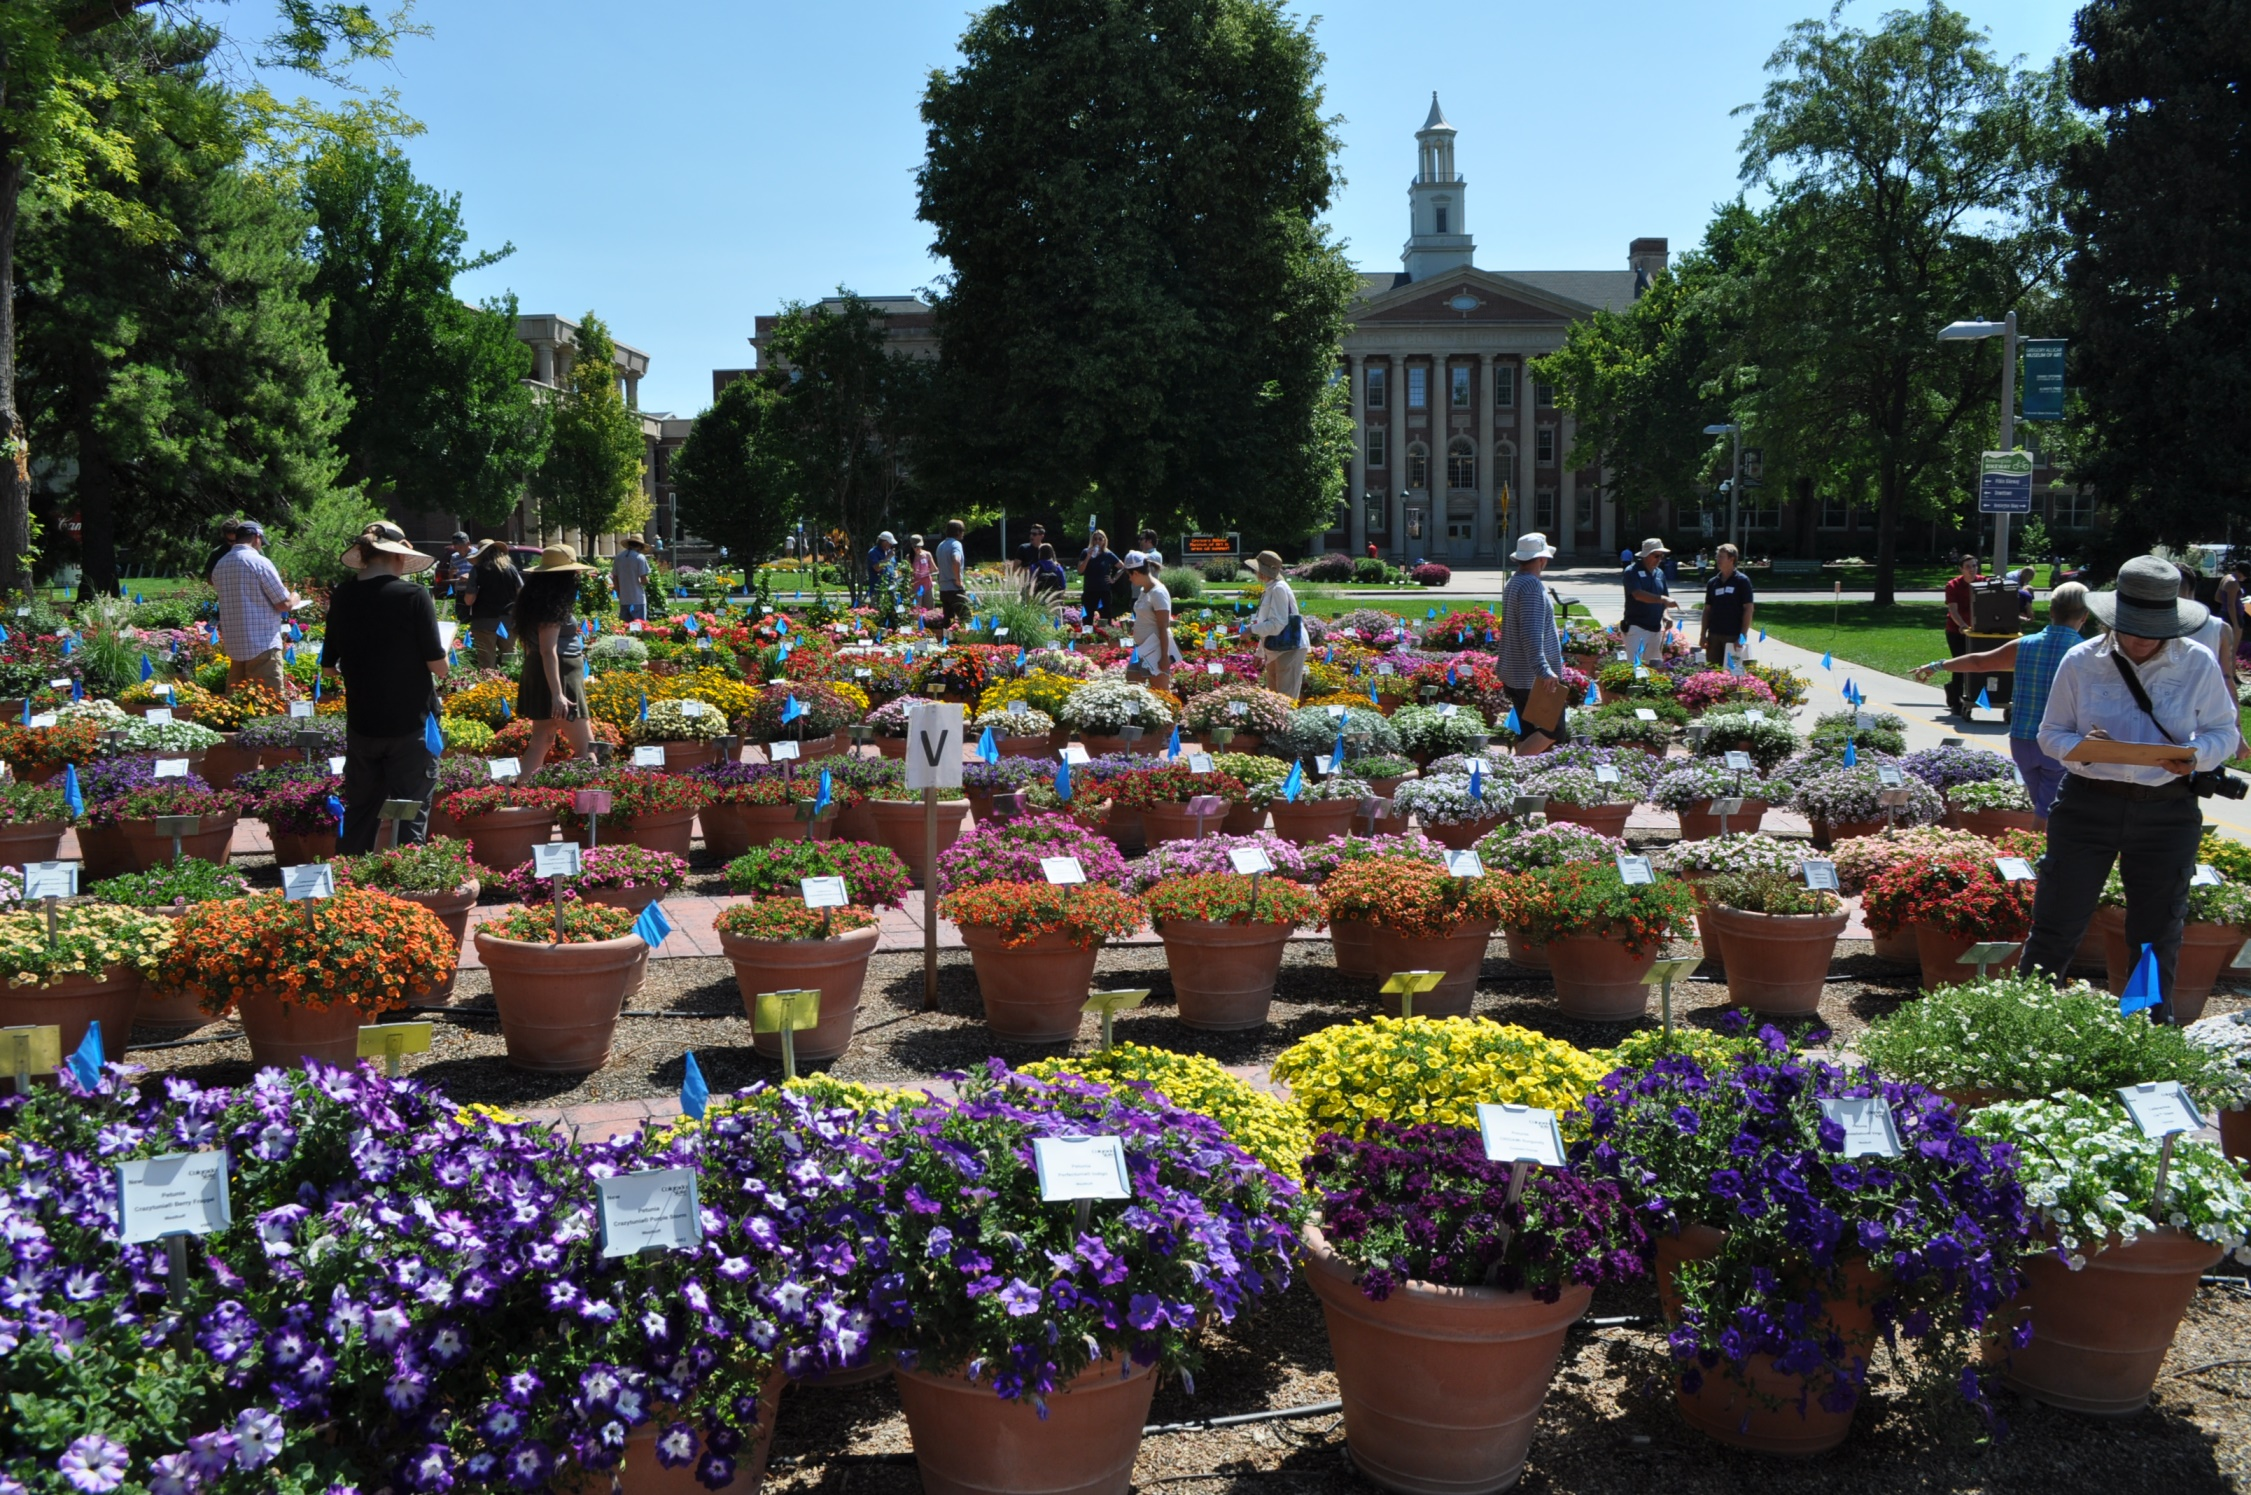 A display of plants being evaluated on Evaluation Day at the CSU annual flower trial garden